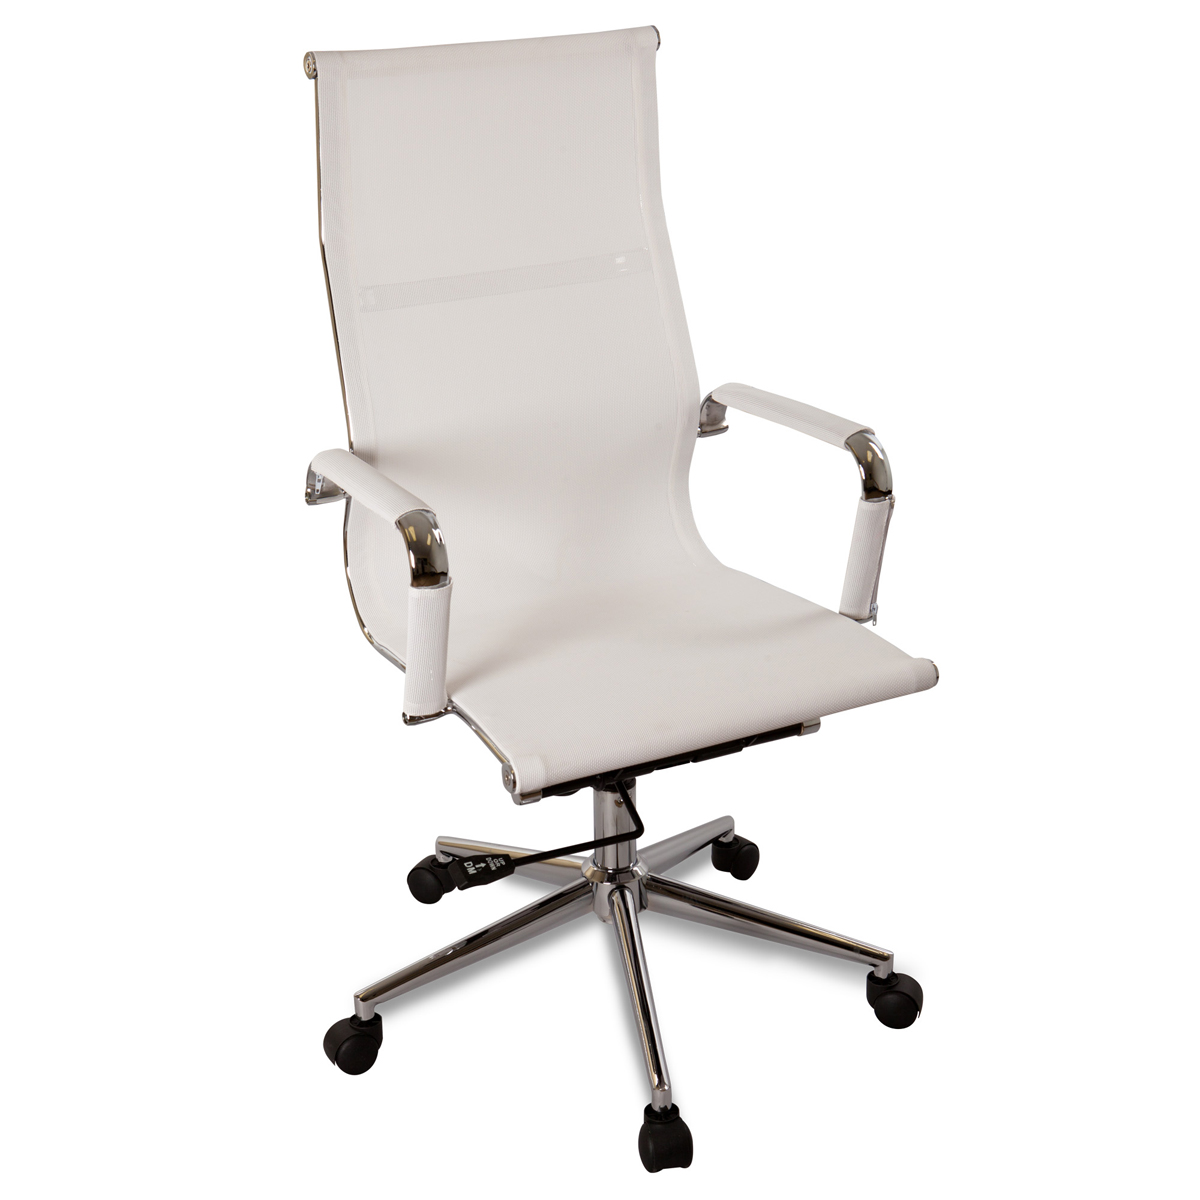 White Leather Office Chair Ikea Responsive Image White Leather Office Chair Ikea